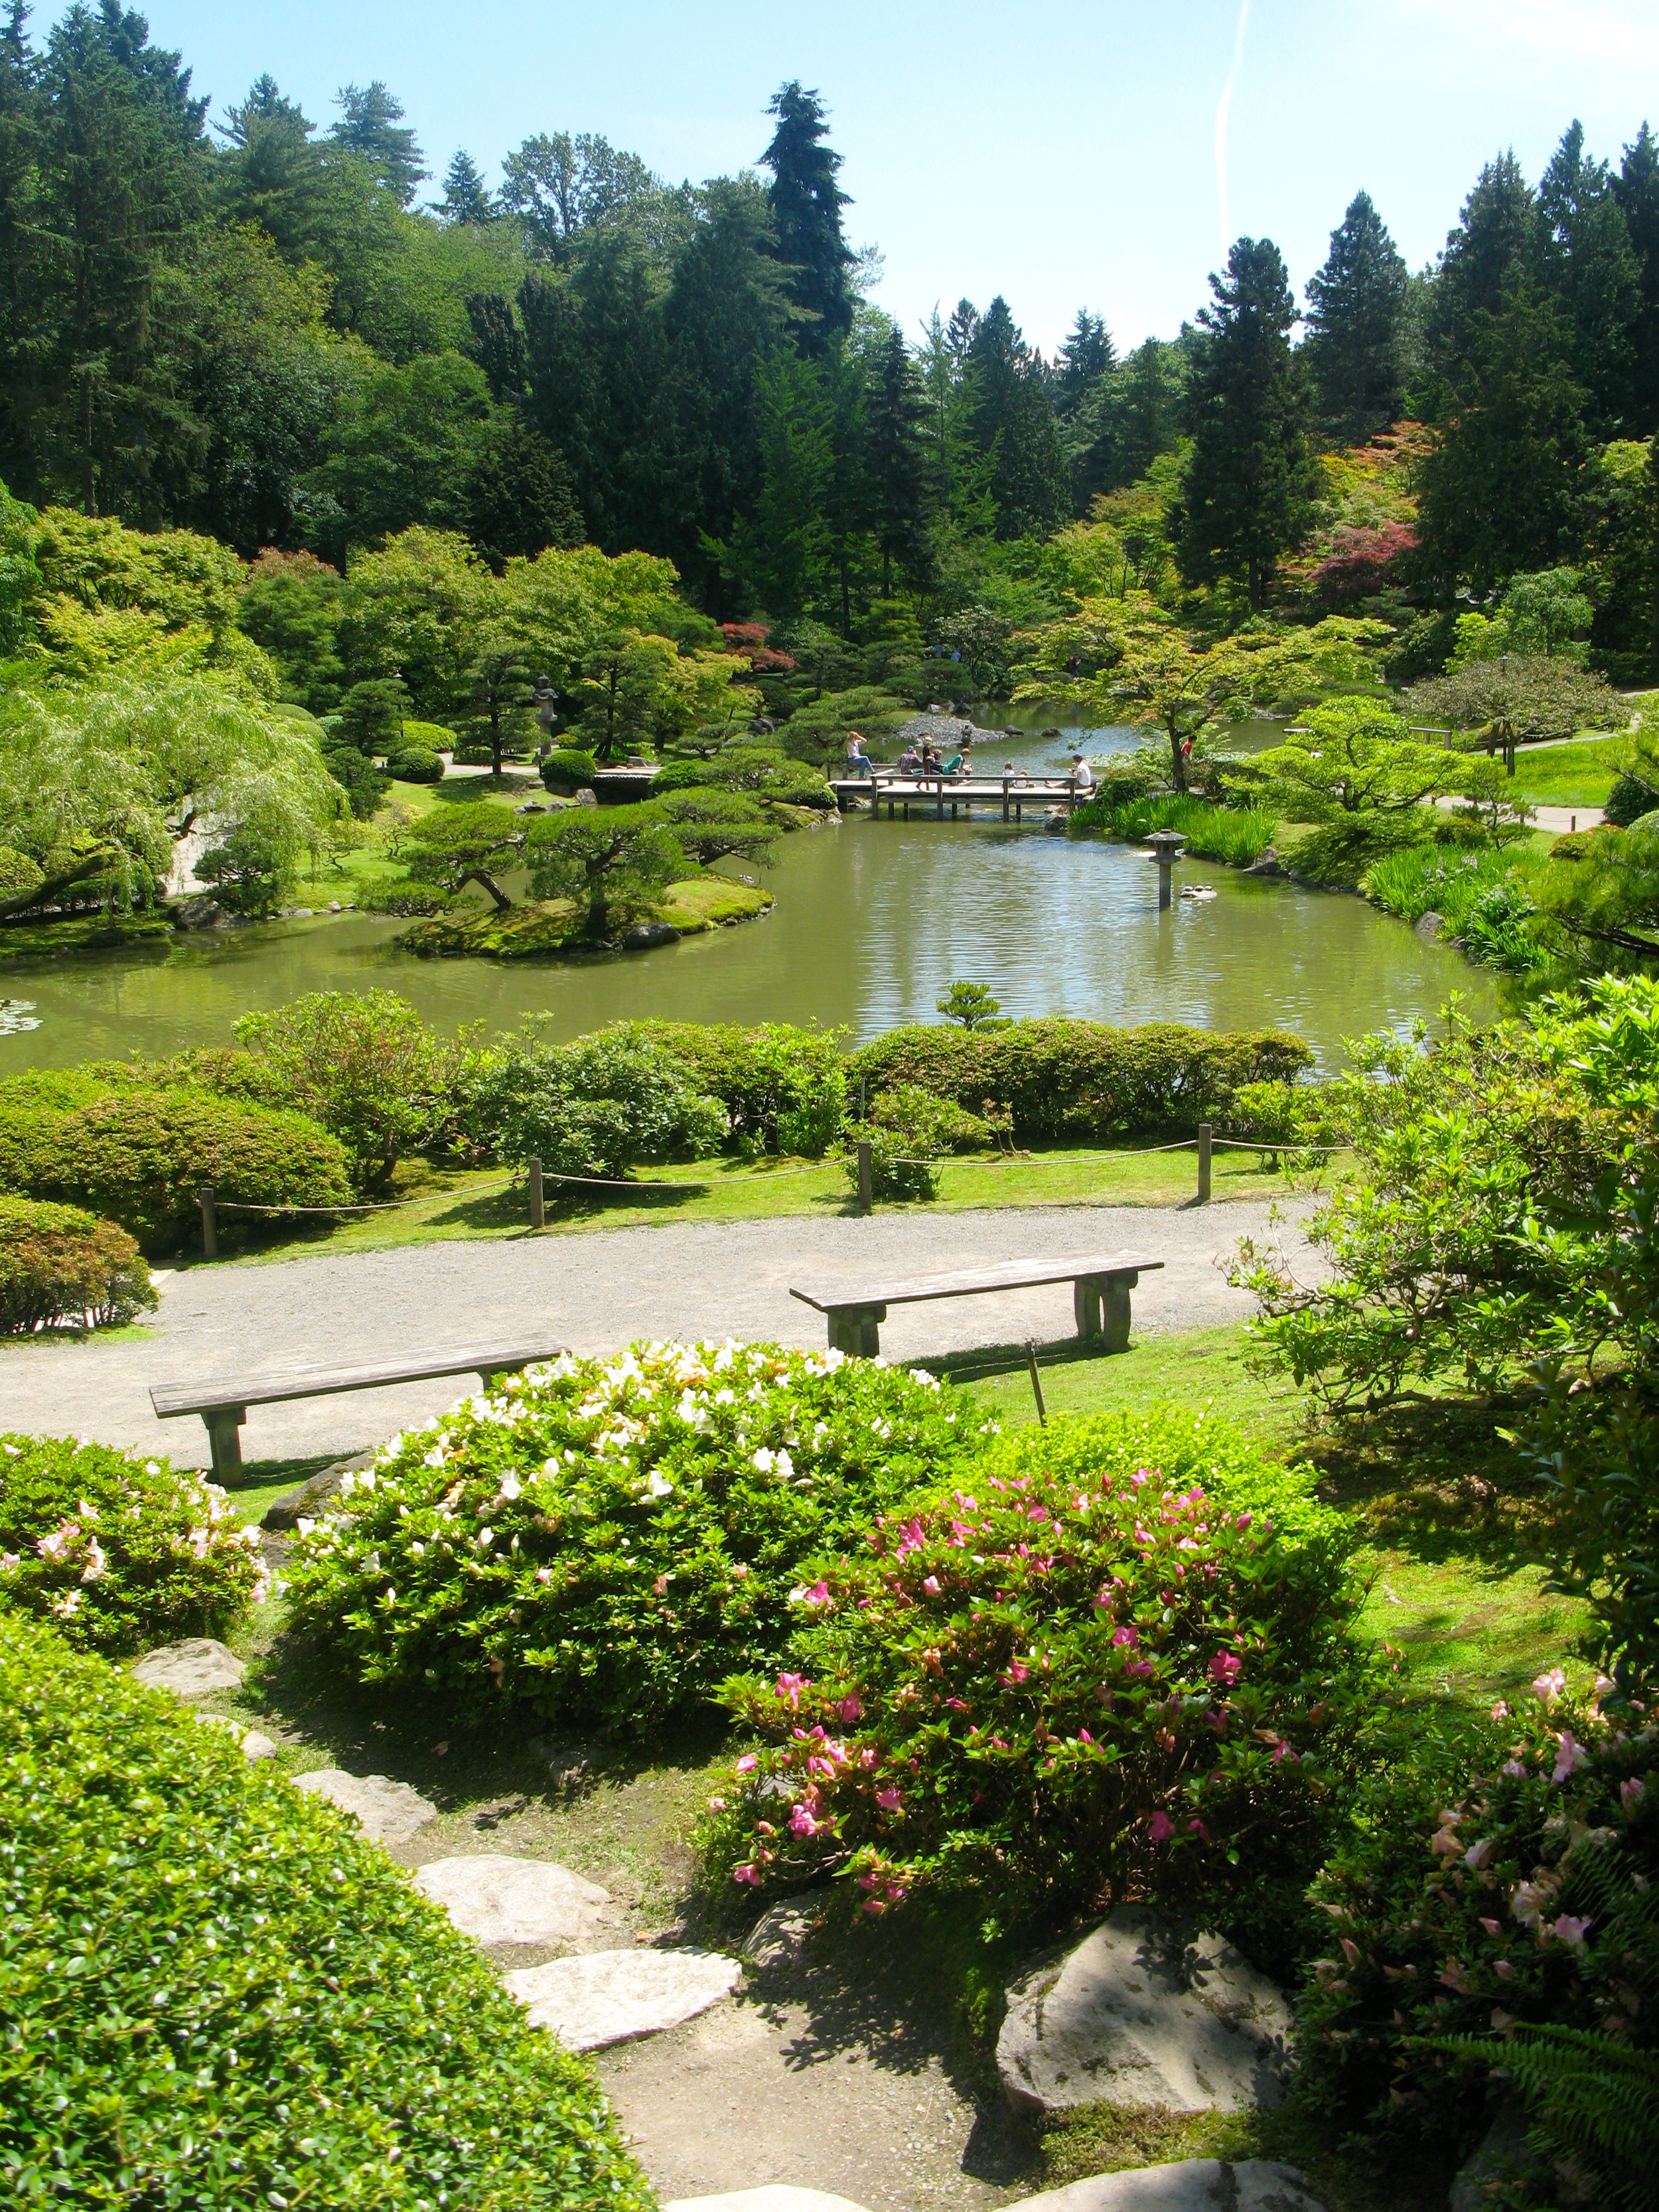 Japanese Gardens near Seattle's Arboretum. Photo by Rebecca Garland.